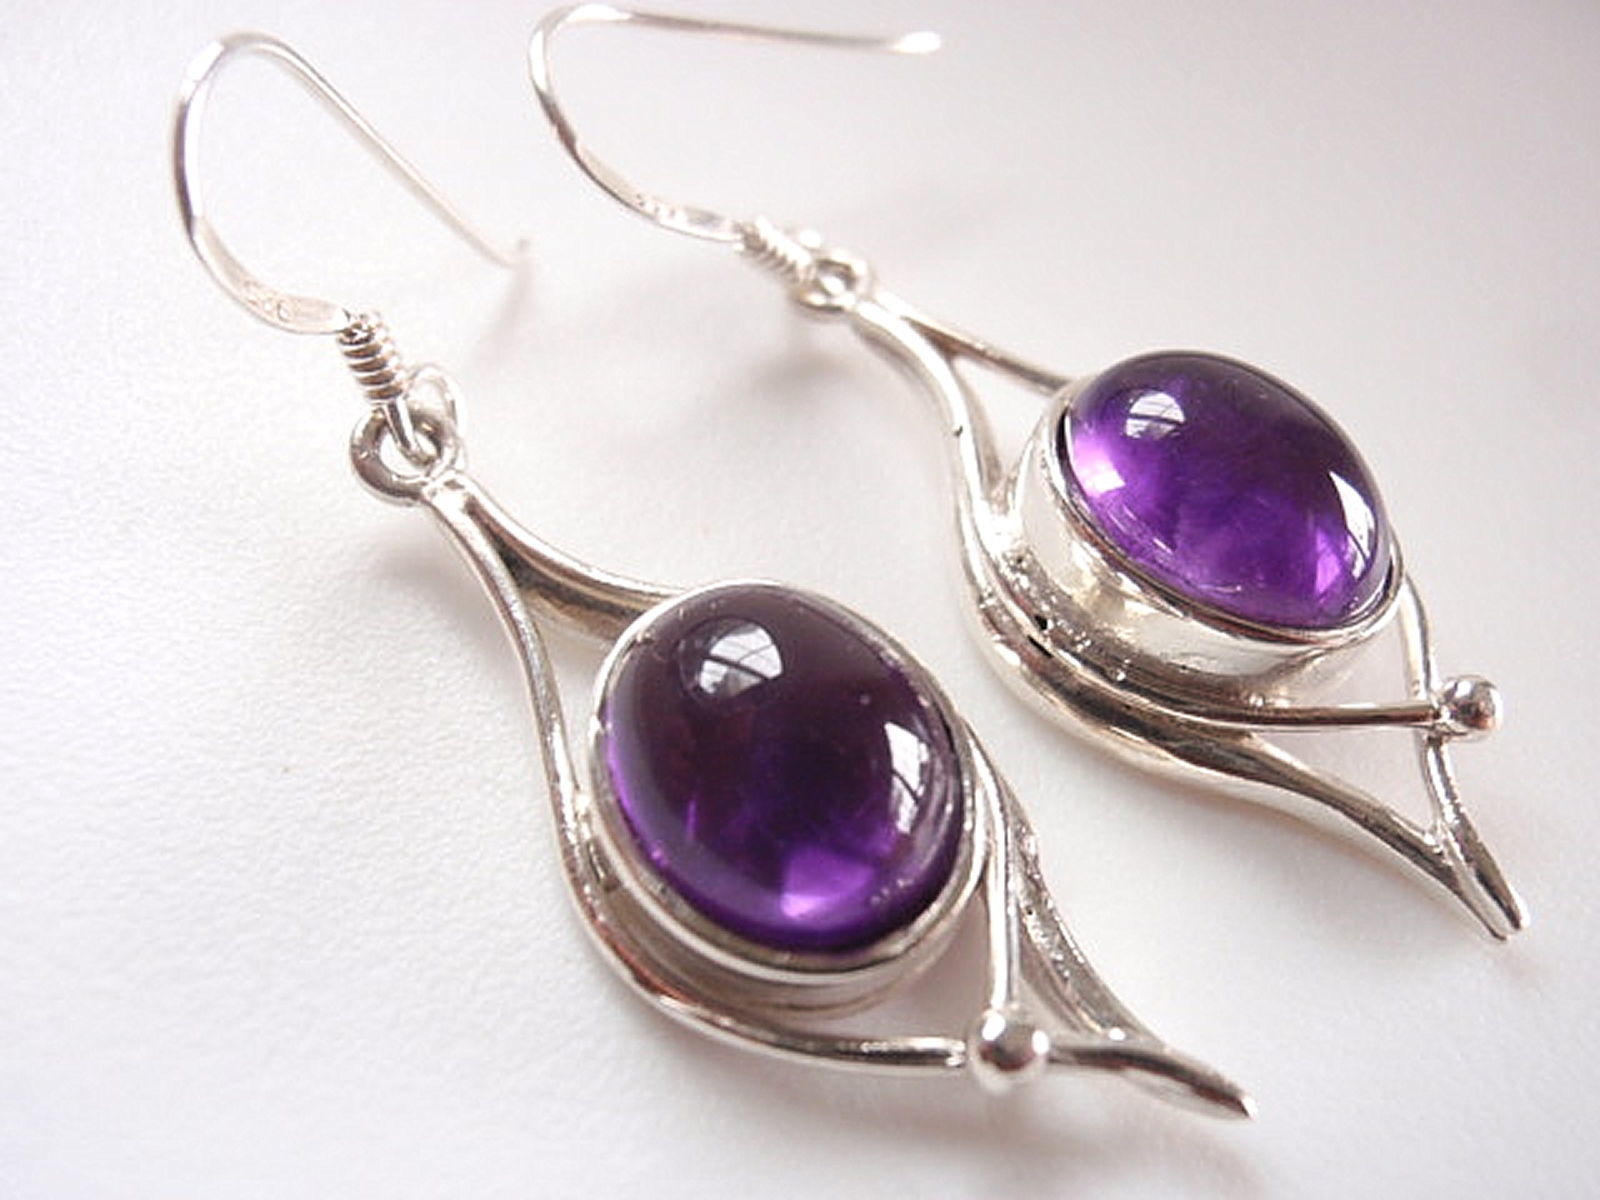 Primary image for Purple Amethyst Wonderfully Curvy Dangle Earrings 925 Sterling Silver Corona Sun